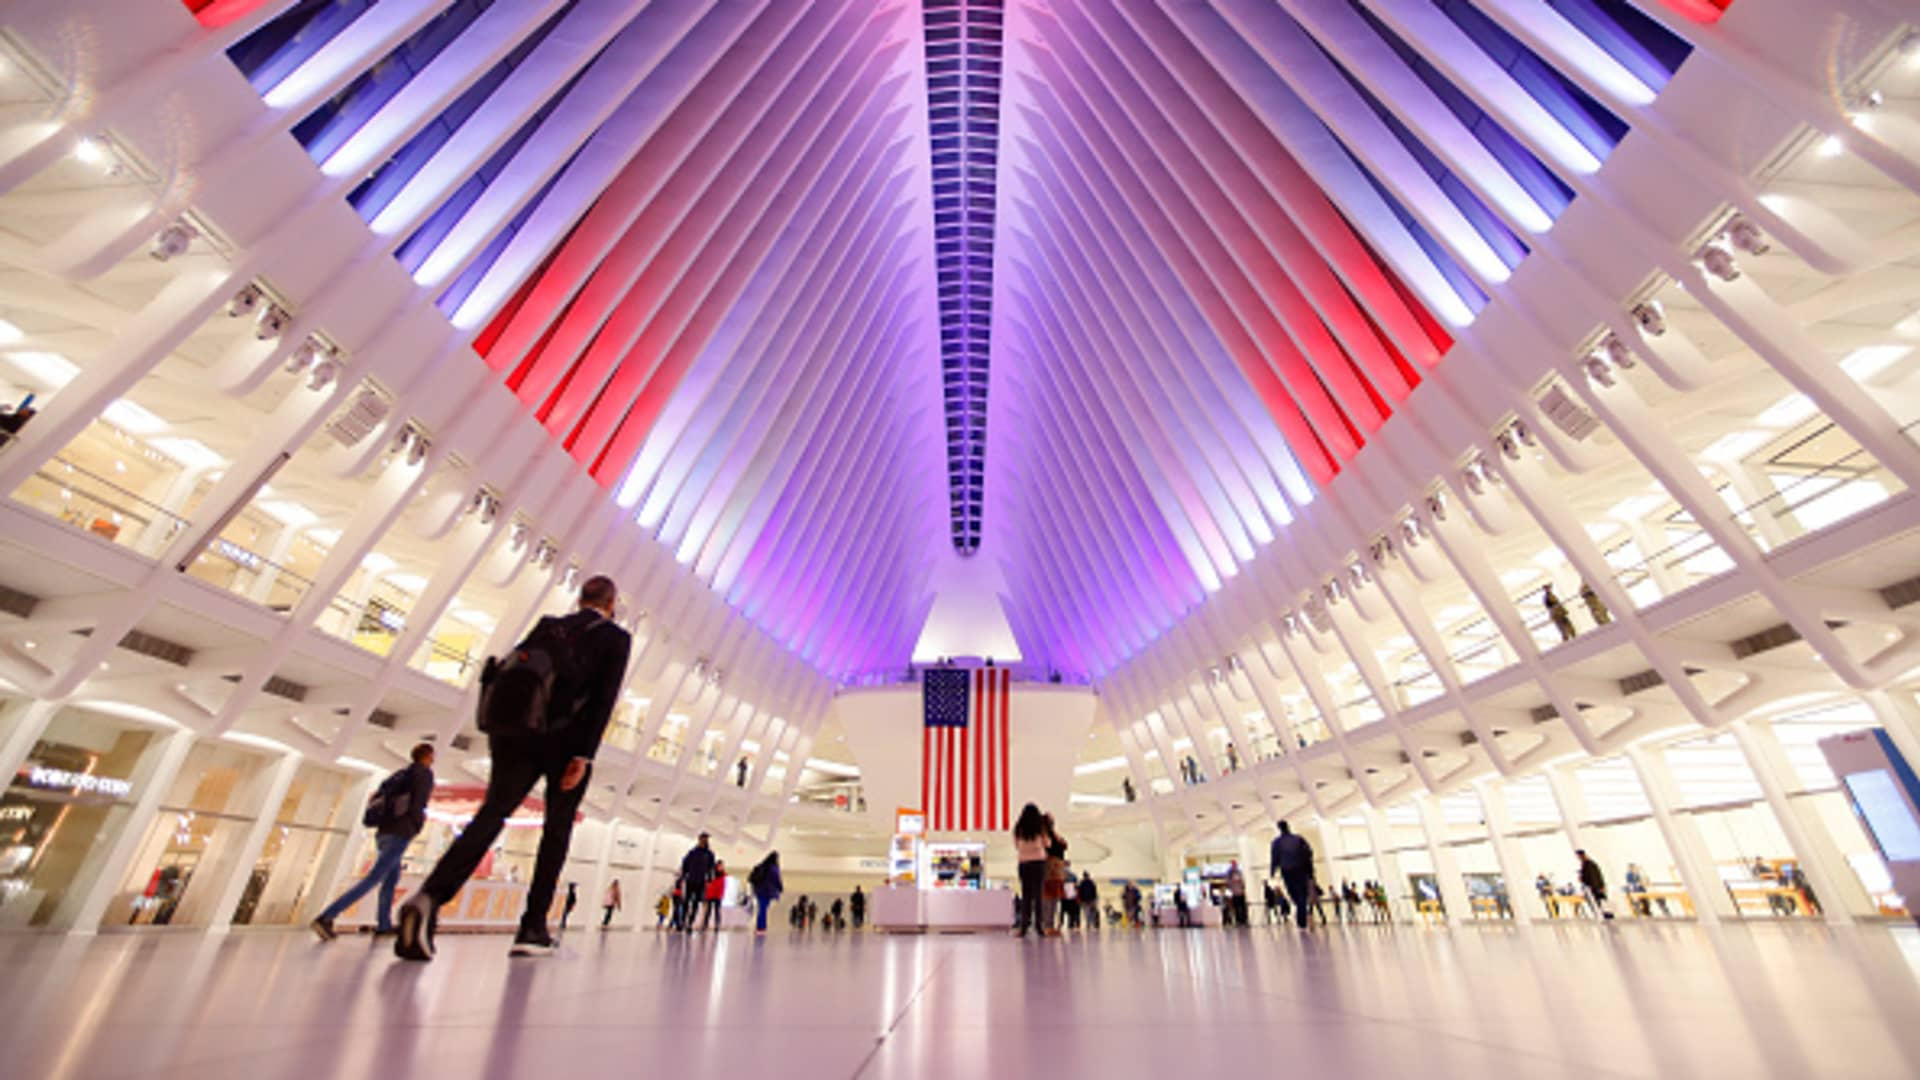 The Oculus transit hub at One World Trade Center turns on its new LED lights in red, white and blue in honor of Veterans Day on November 10, 2020 in New York City.